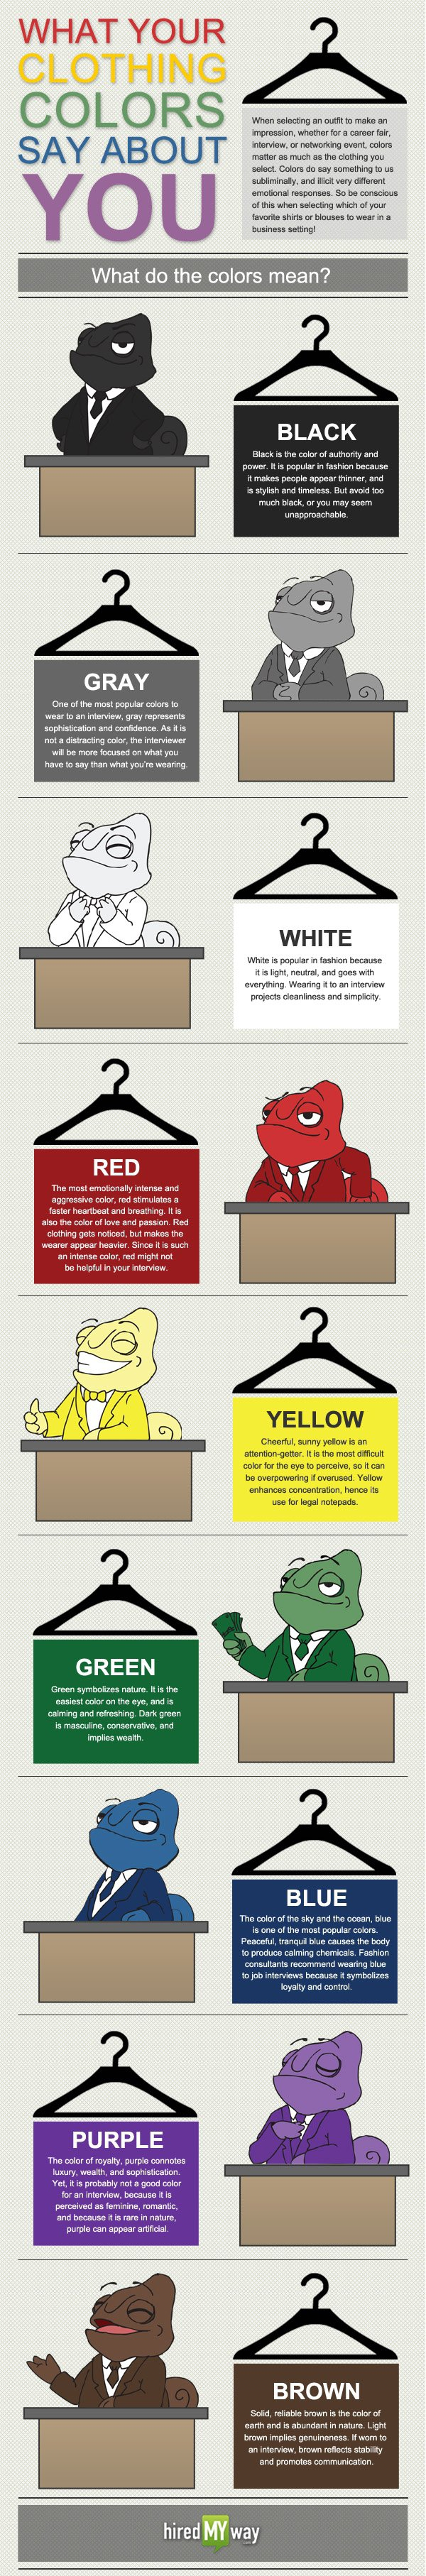 What Your Clothing Colors Say about You